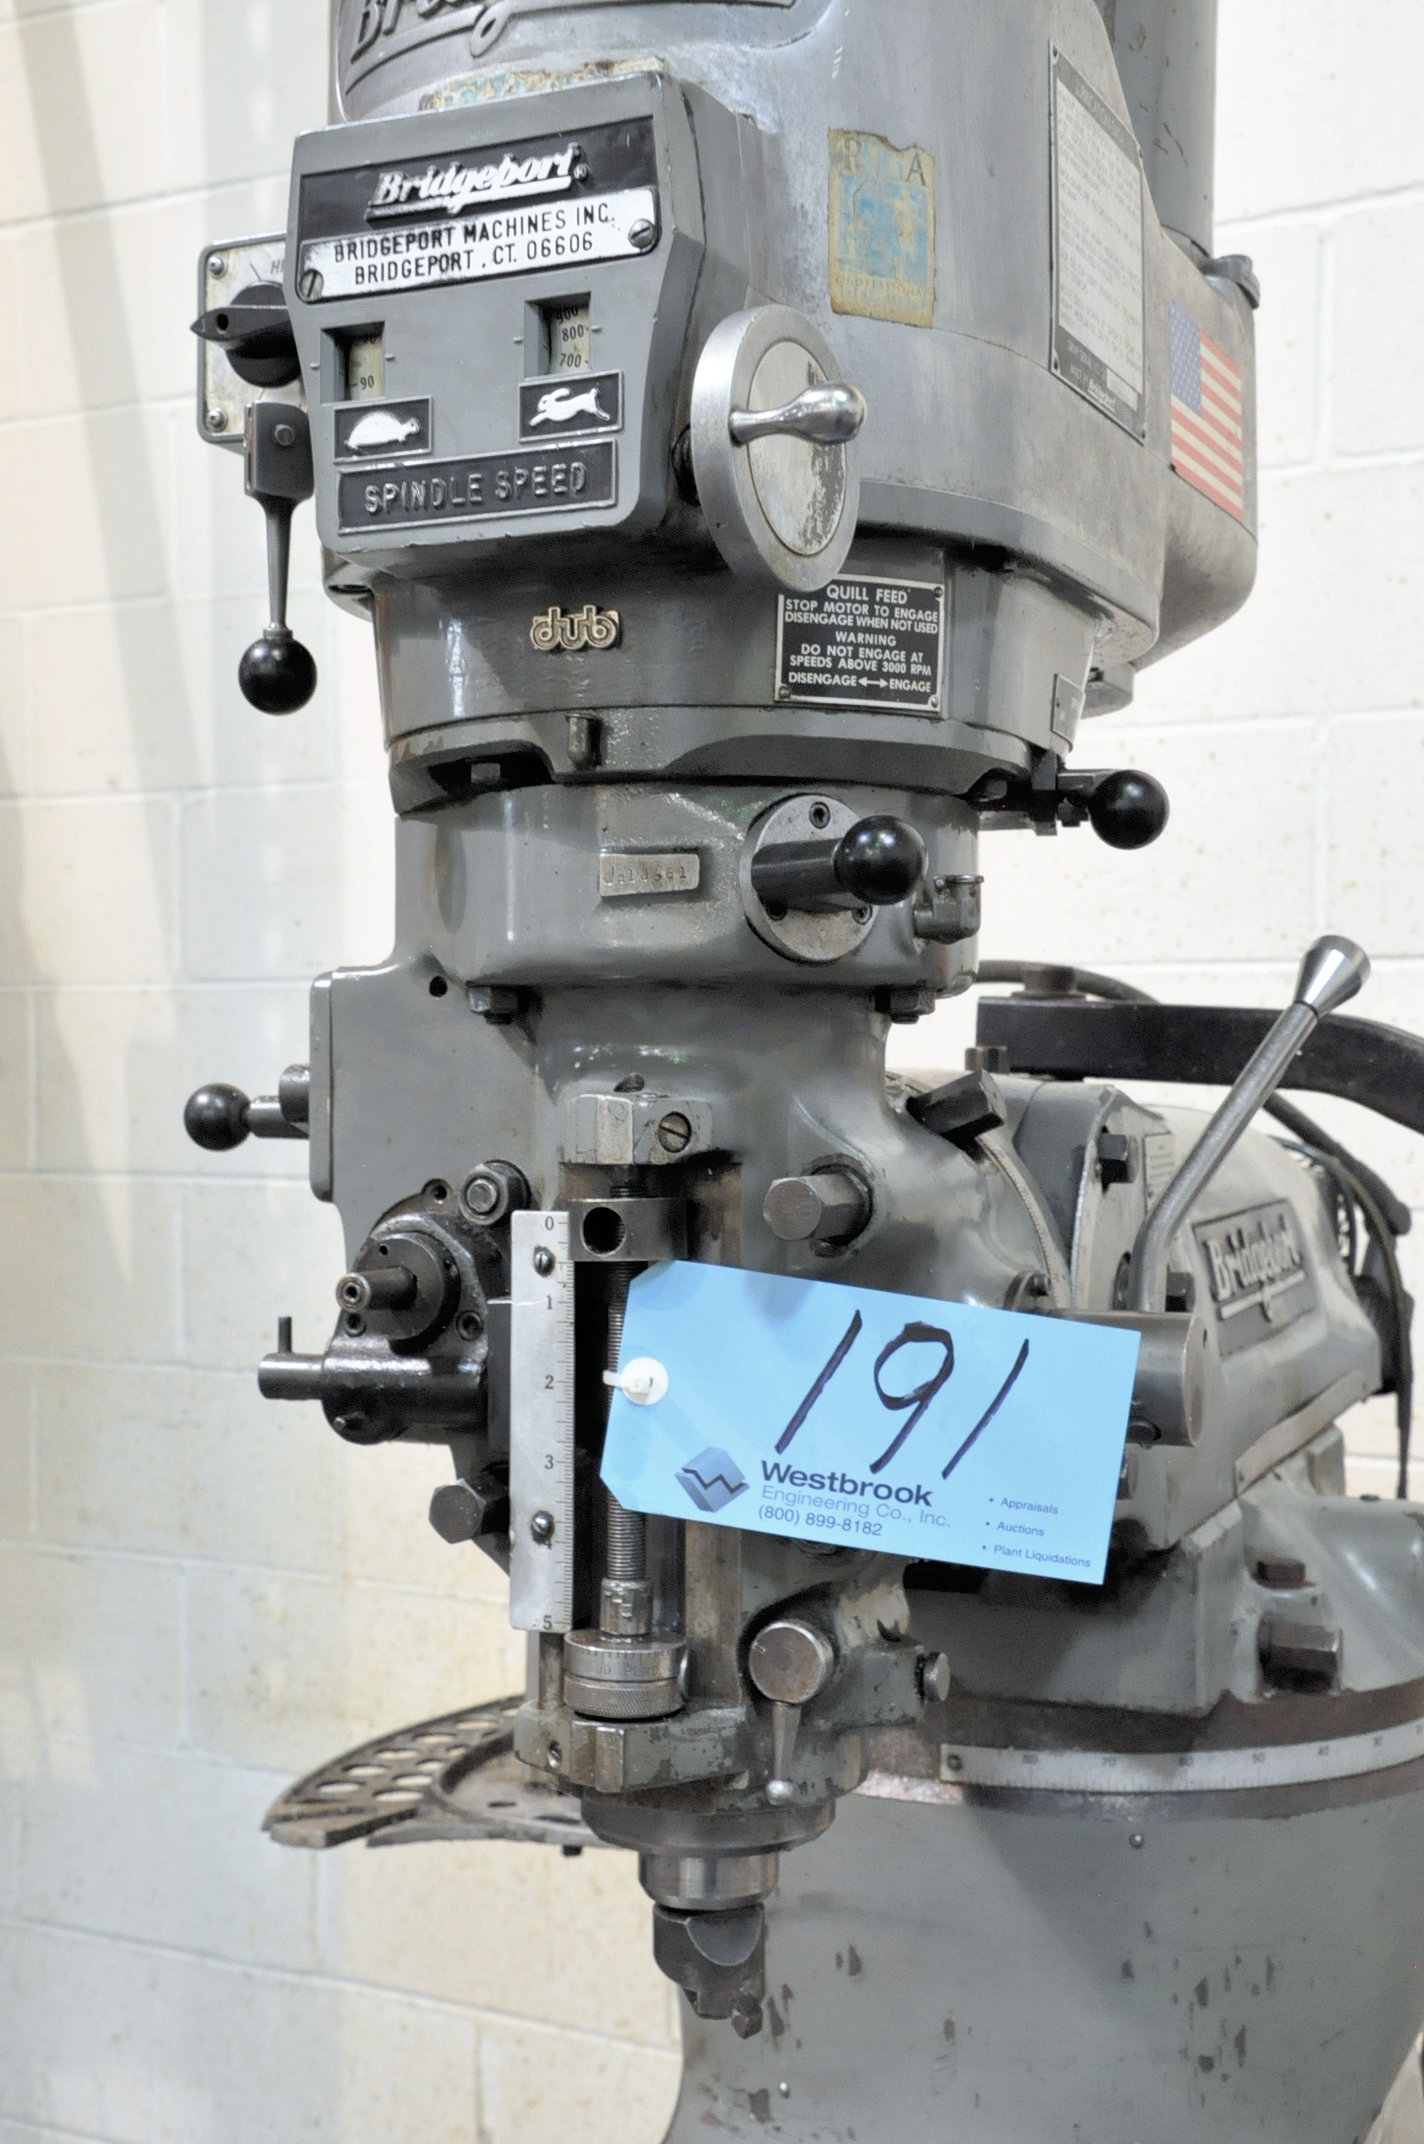 Bridgeport 2-HP Variable Speed Vertical Milling Machine, 2-Axis Readouts, X, Y and Knee Powered Feed - Image 4 of 6